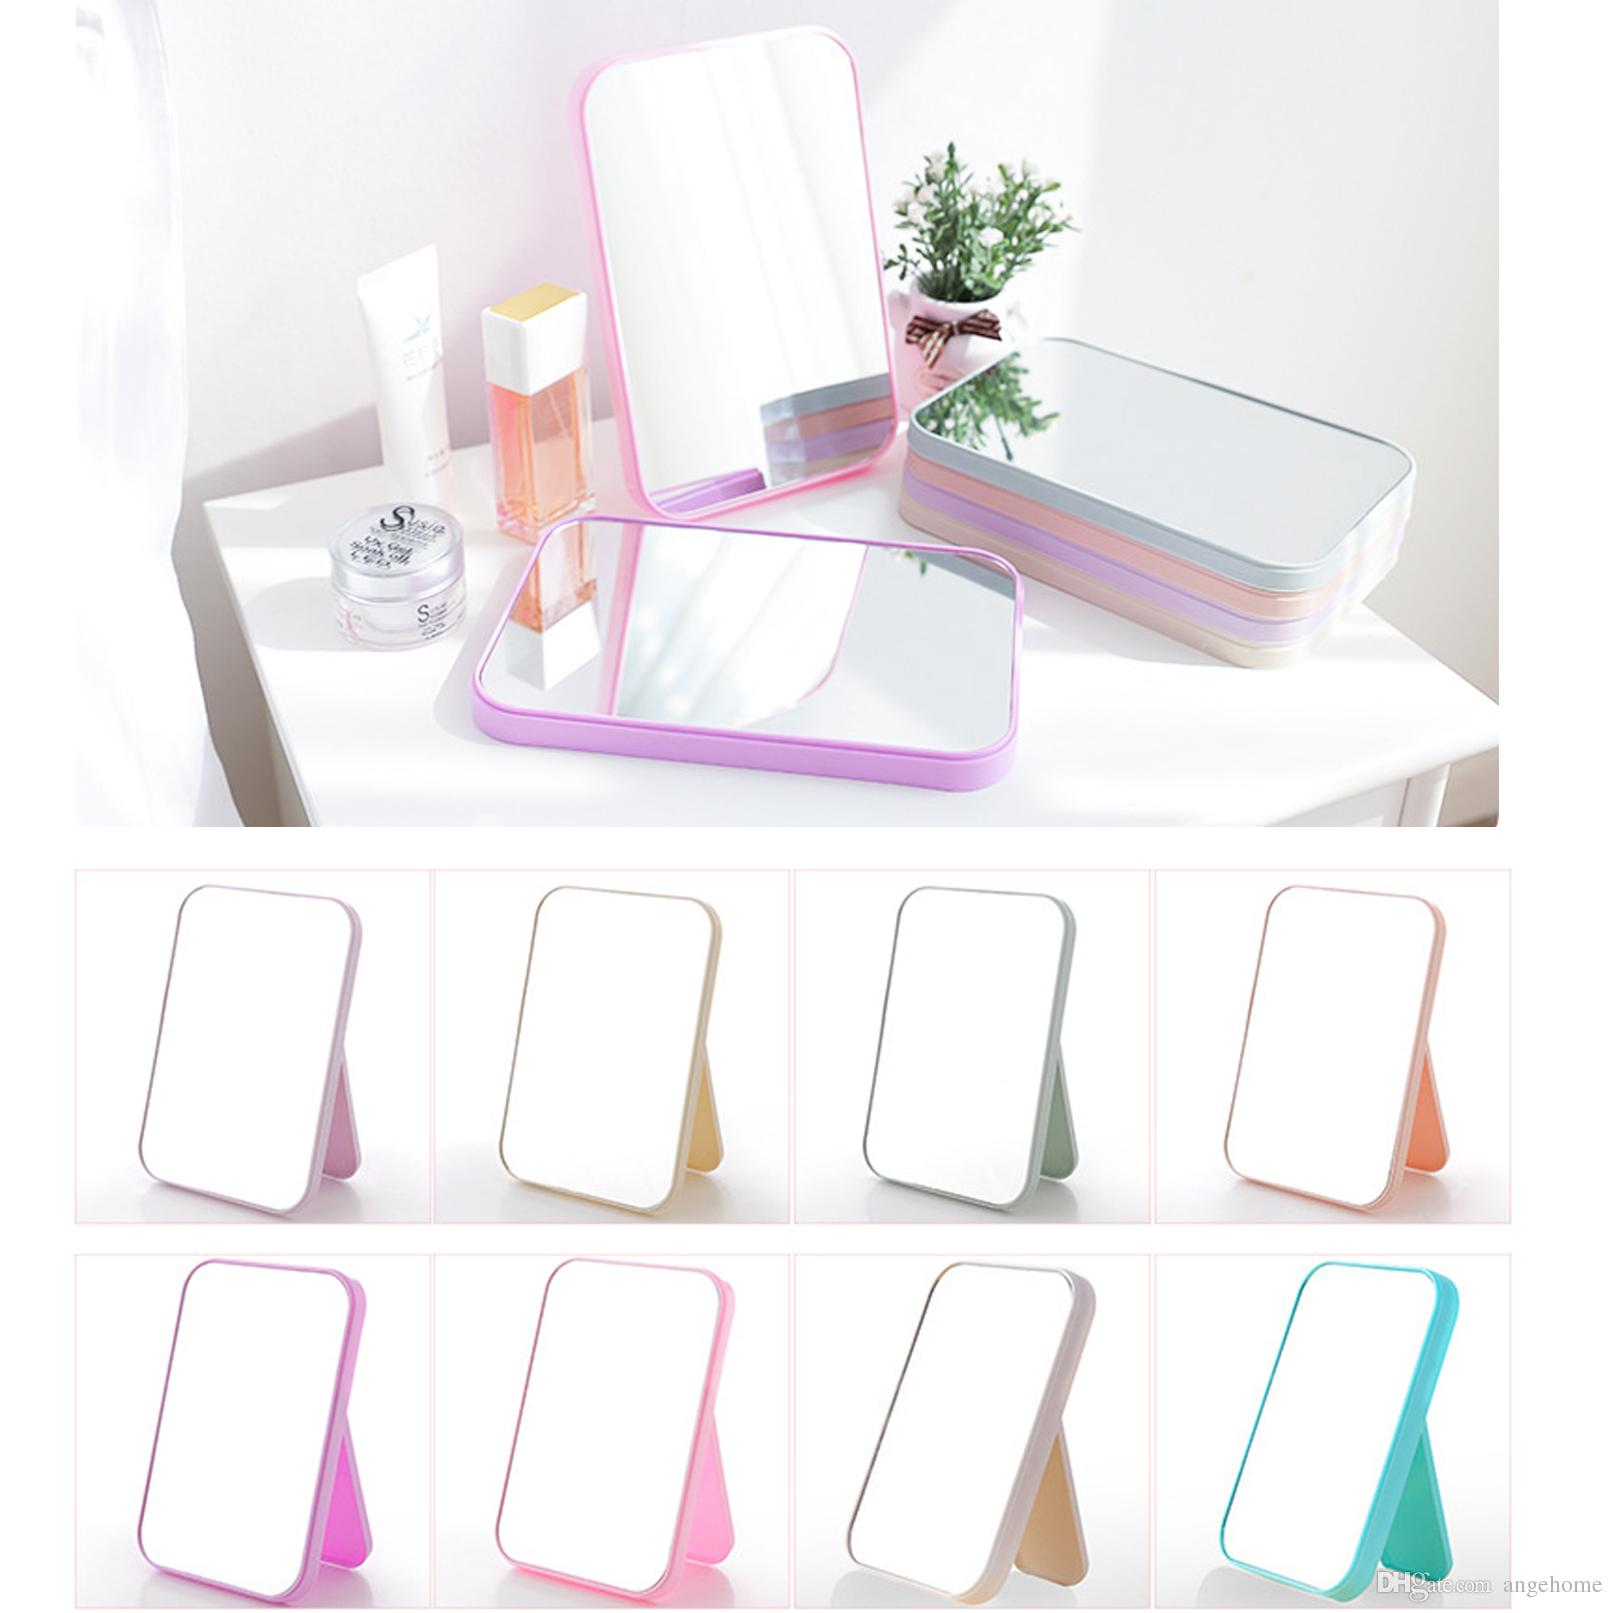 Foldable Makeup Mirror - Desktop Cosmetic Rectangle Mirrors For Women Beauty - Make Up Tool Accessories (20.5cm x 14cm)